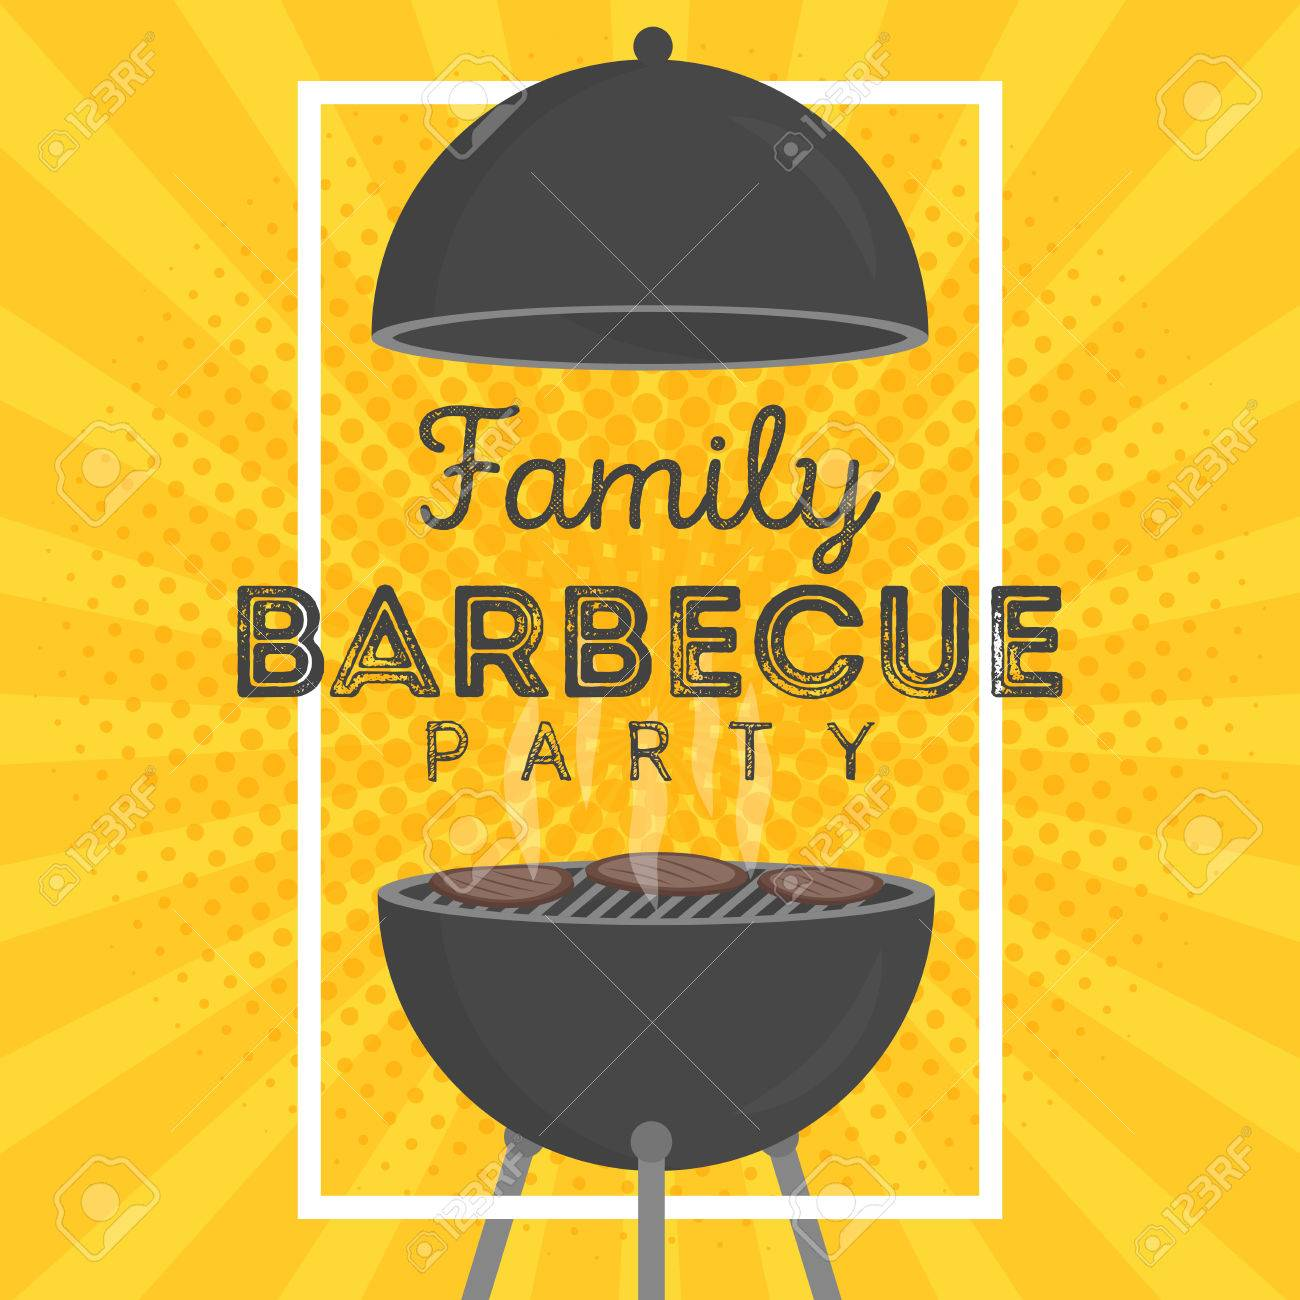 Lovely vector barbecue party invitation design template trendy lovely vector barbecue party invitation design template trendy bbq cookout poster design with classic charcoal pronofoot35fo Choice Image